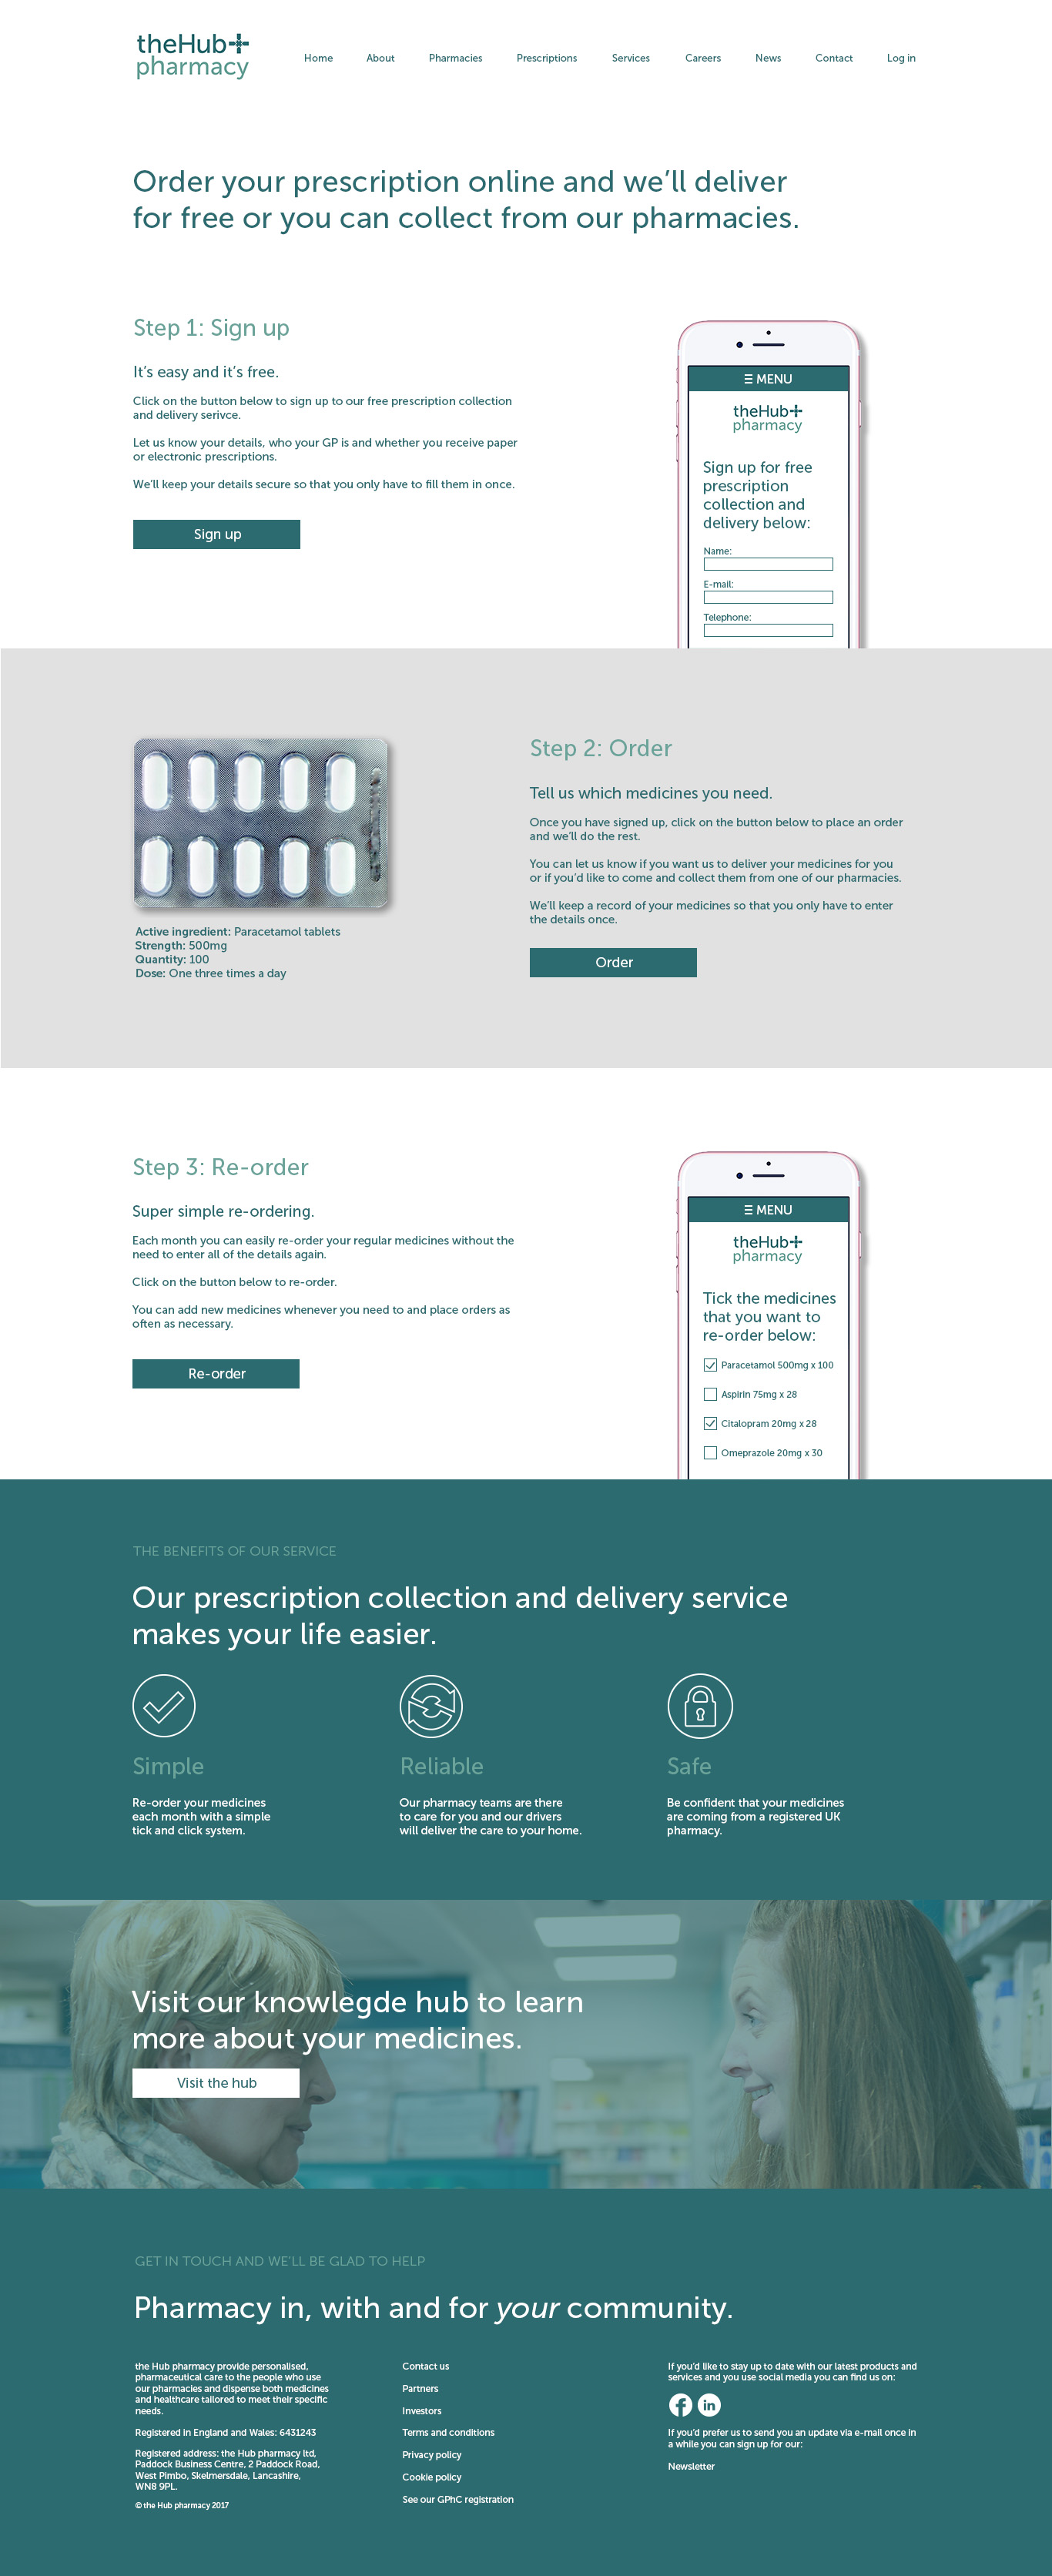 DOSE Design and Marketing the Hub pharmacy Website Prescriptions